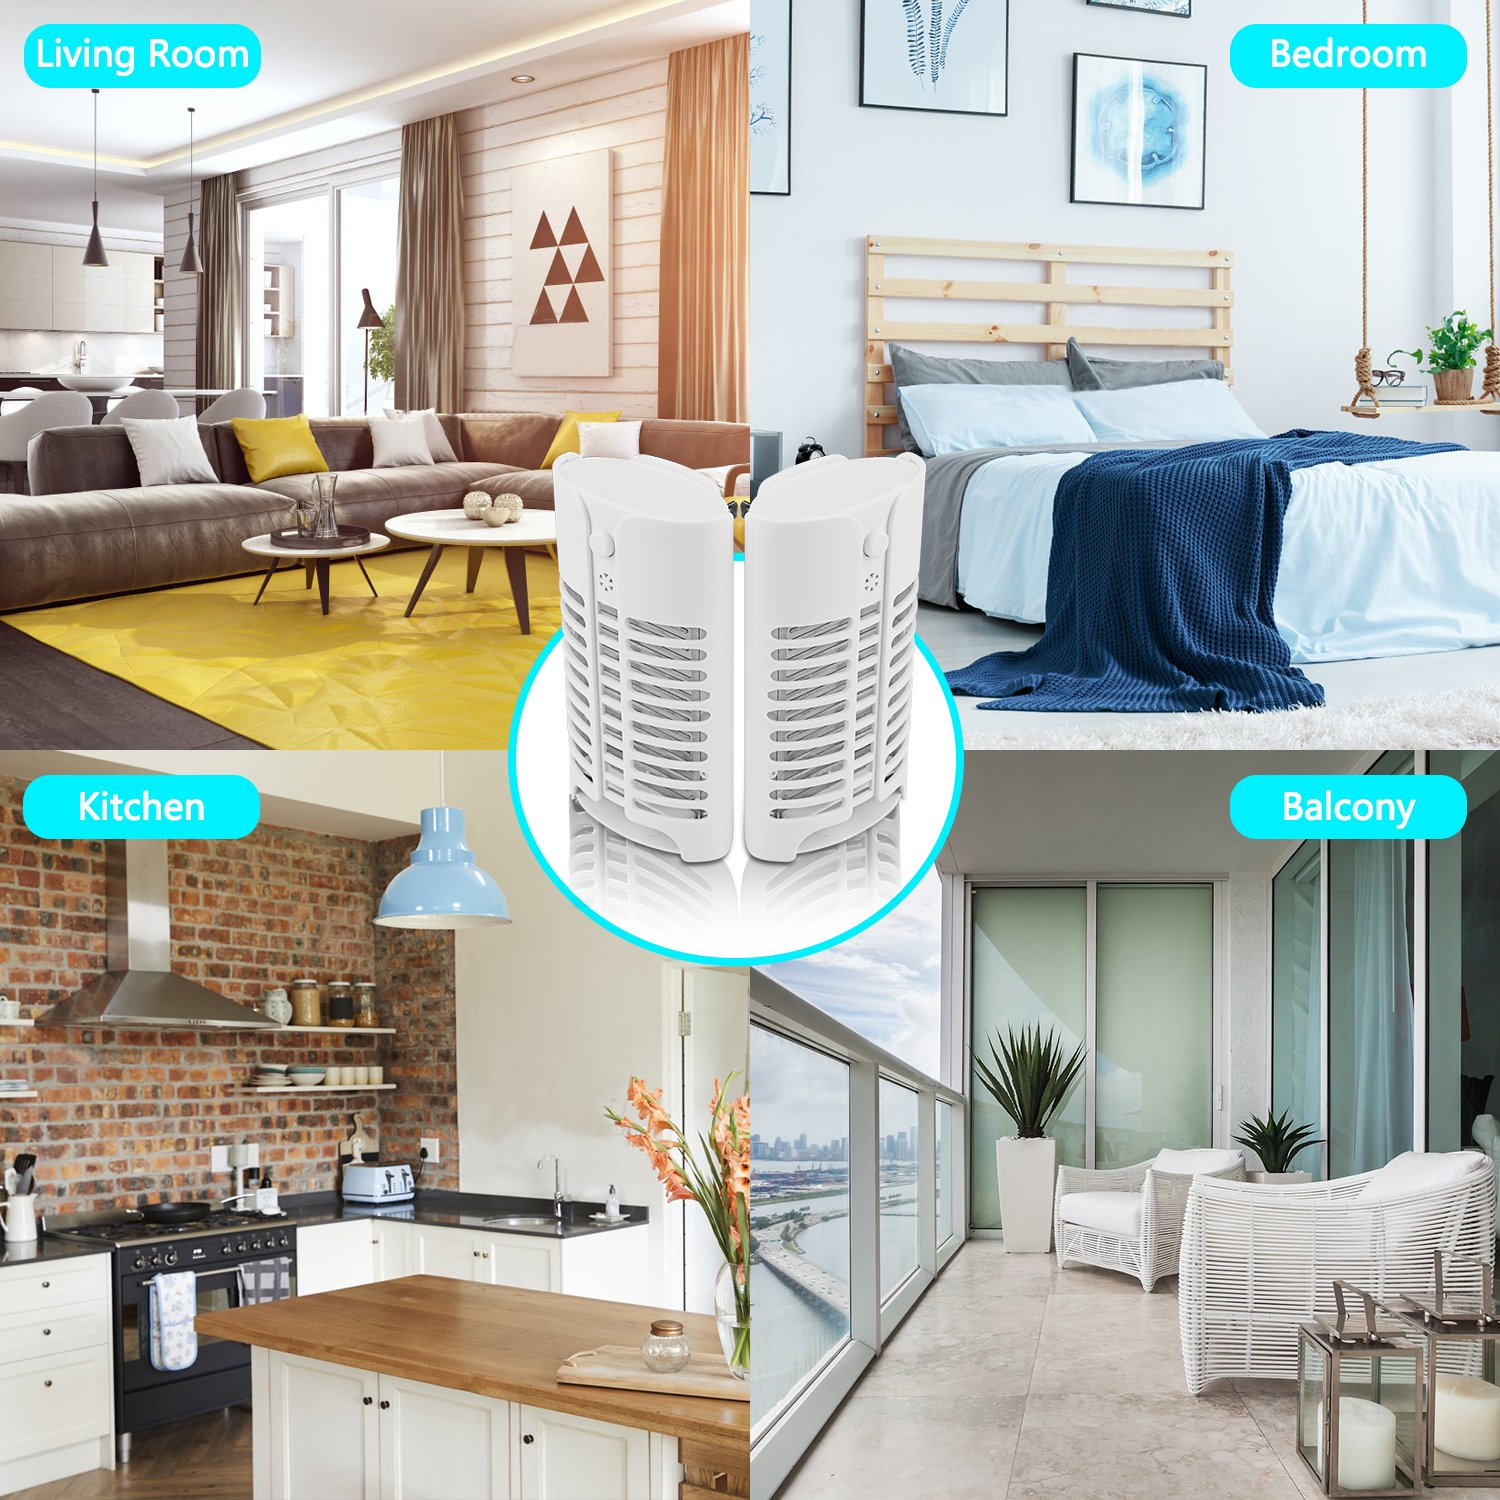 Lookka Fly Zapper with UV Light-Chemical-Free UV LED for Mosquito Killer Trap,Mini Pest Repellent for Mosquito//Flies//Small Flying Gnats,Indoor Home Kitchen Bedroom(UK PLUG White 1 Pack